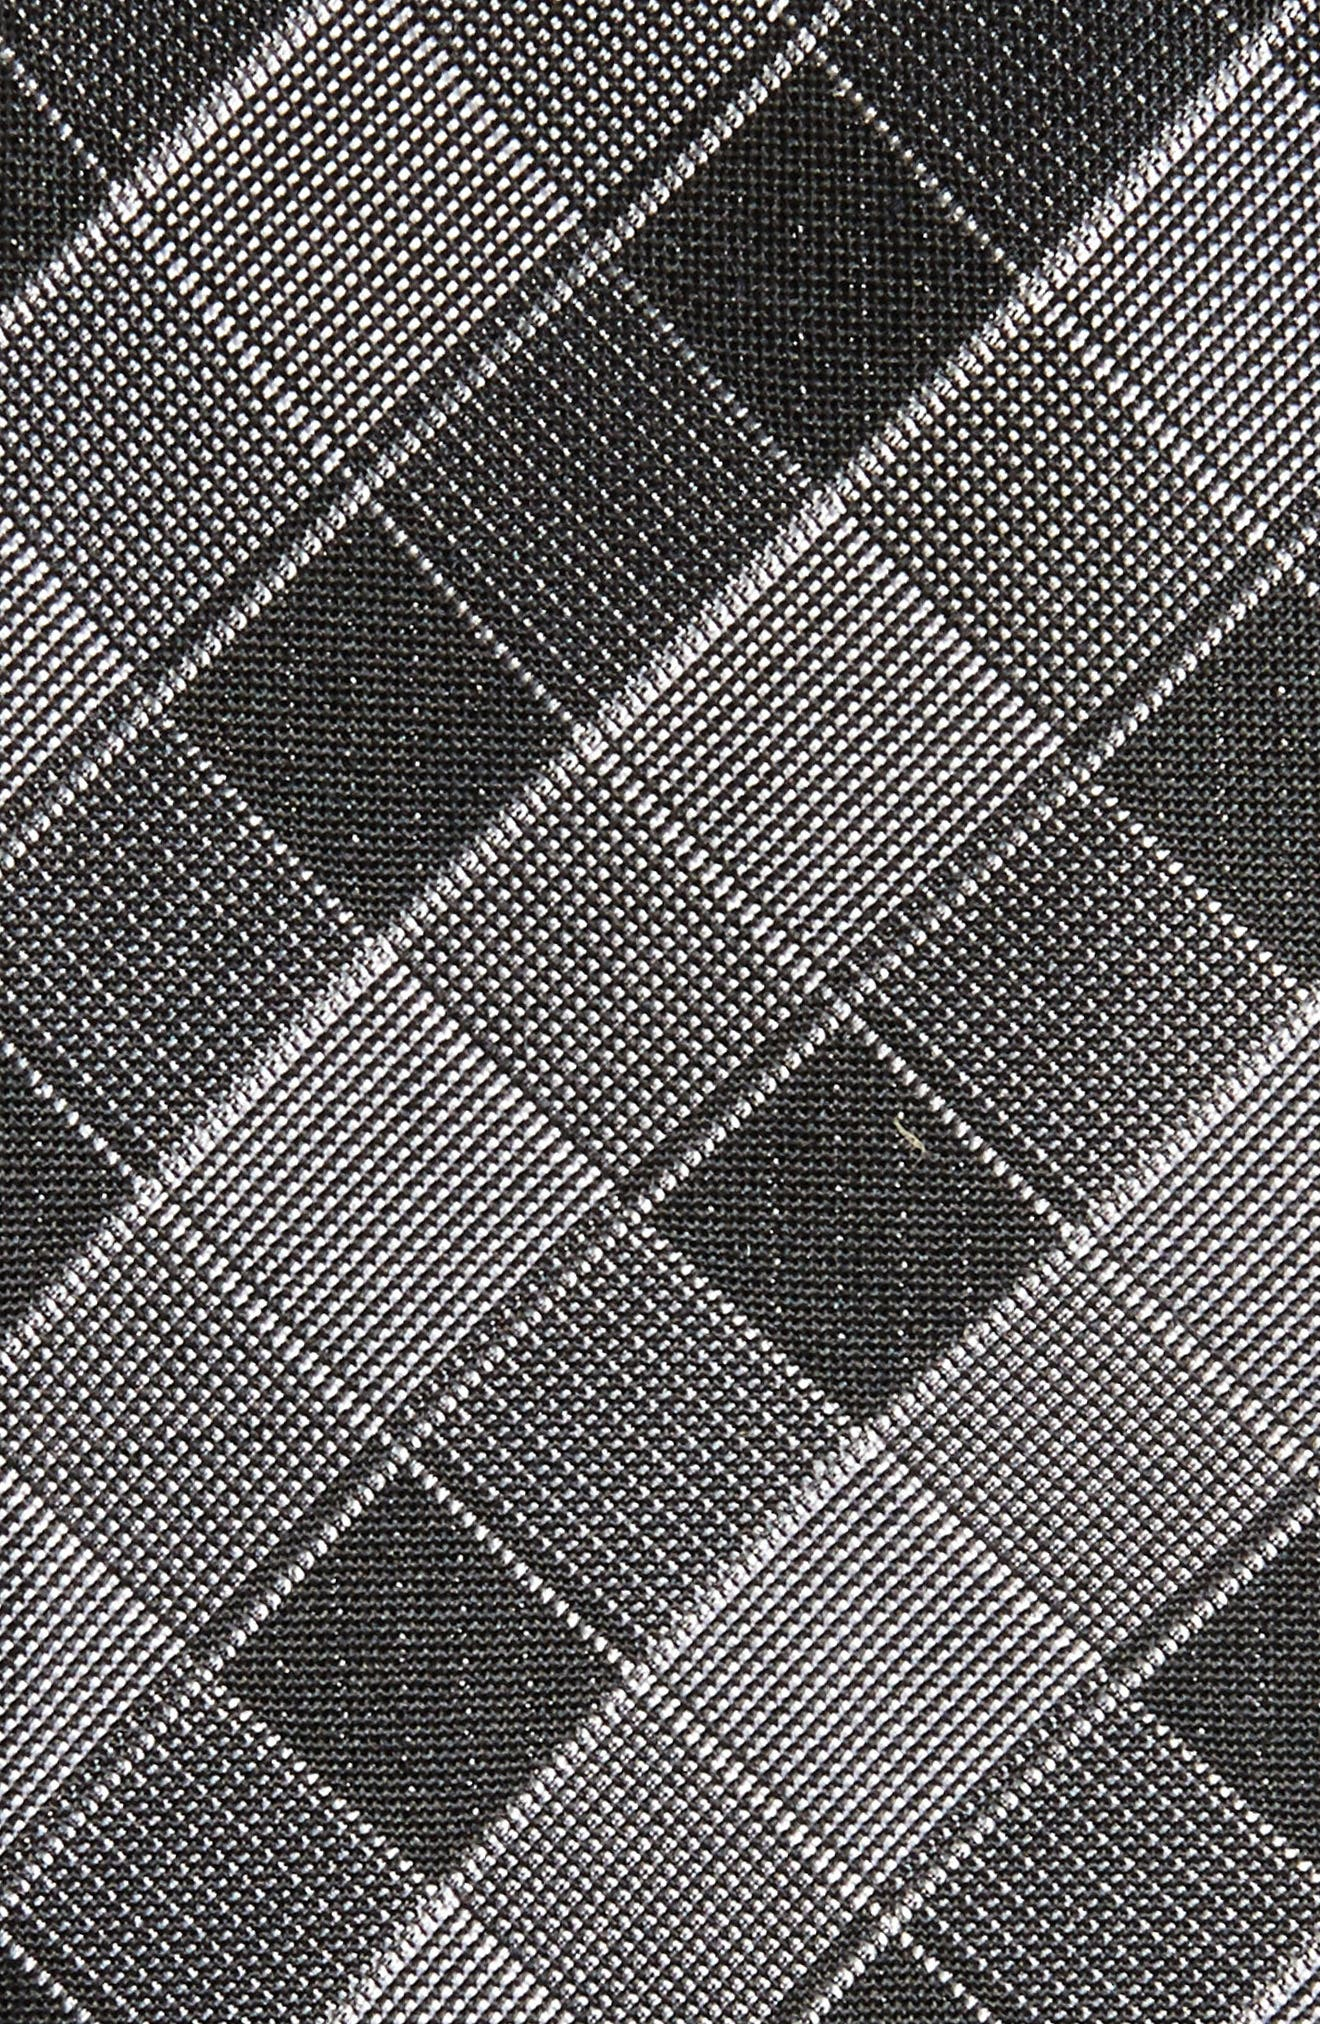 Cobbin Plaid Silk Tie,                             Alternate thumbnail 2, color,                             001